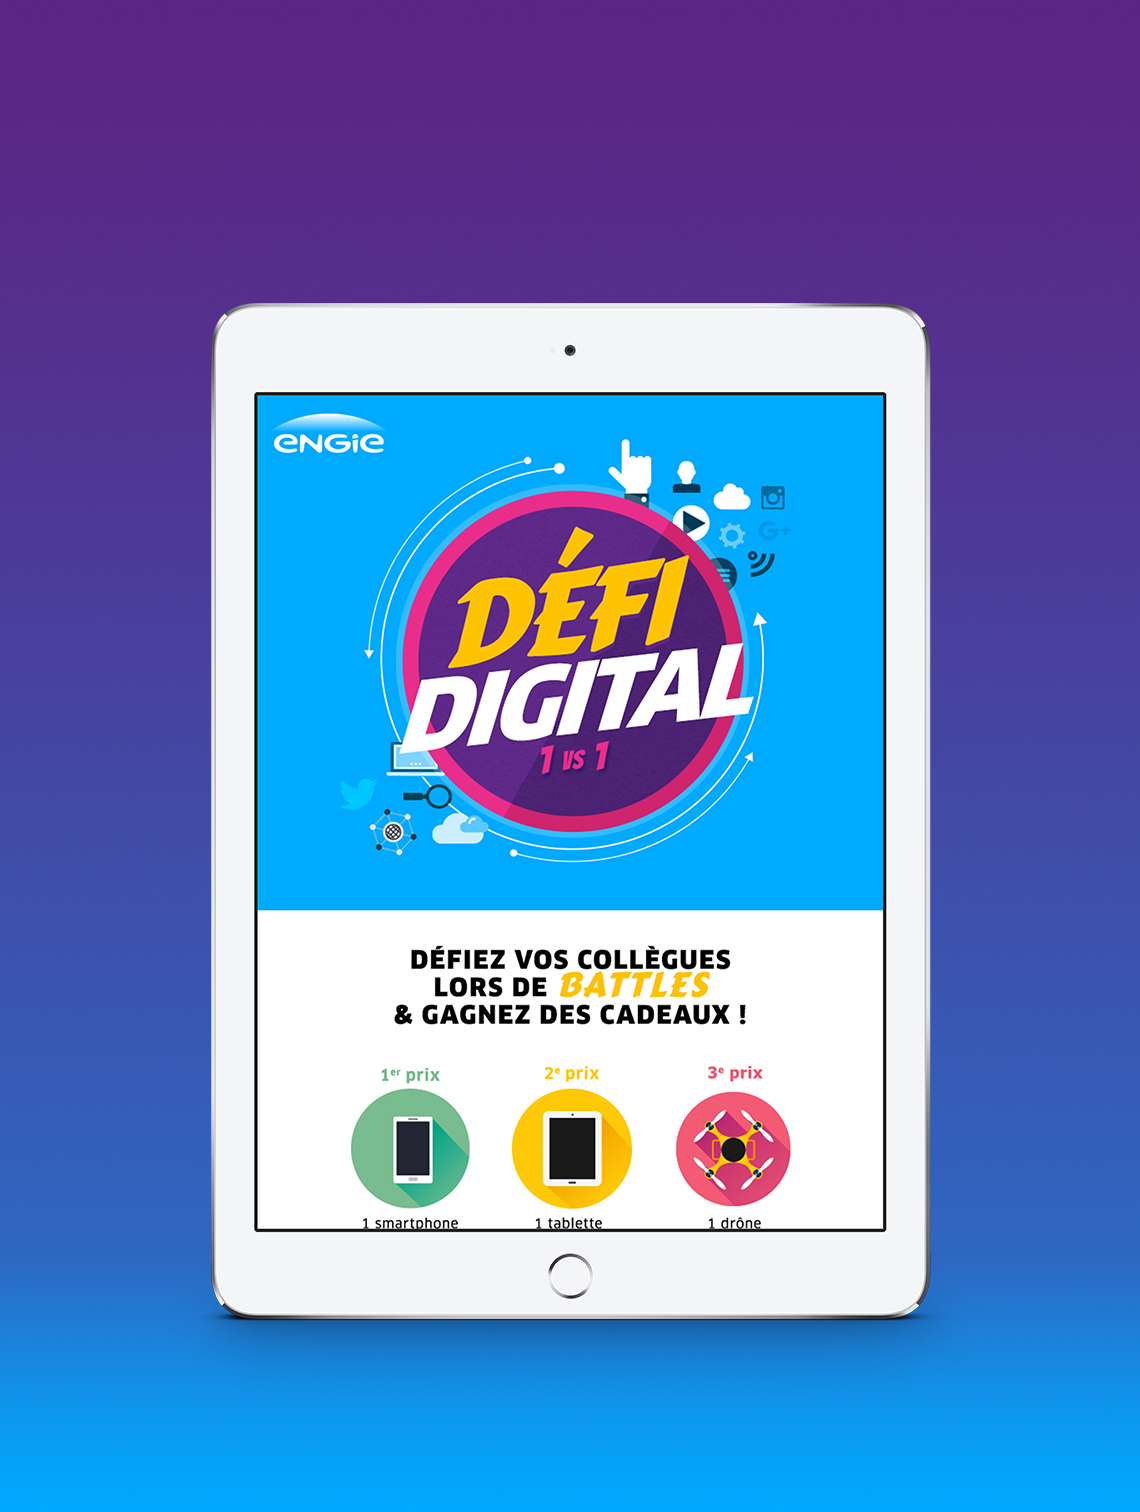 Defi digital Engie 2